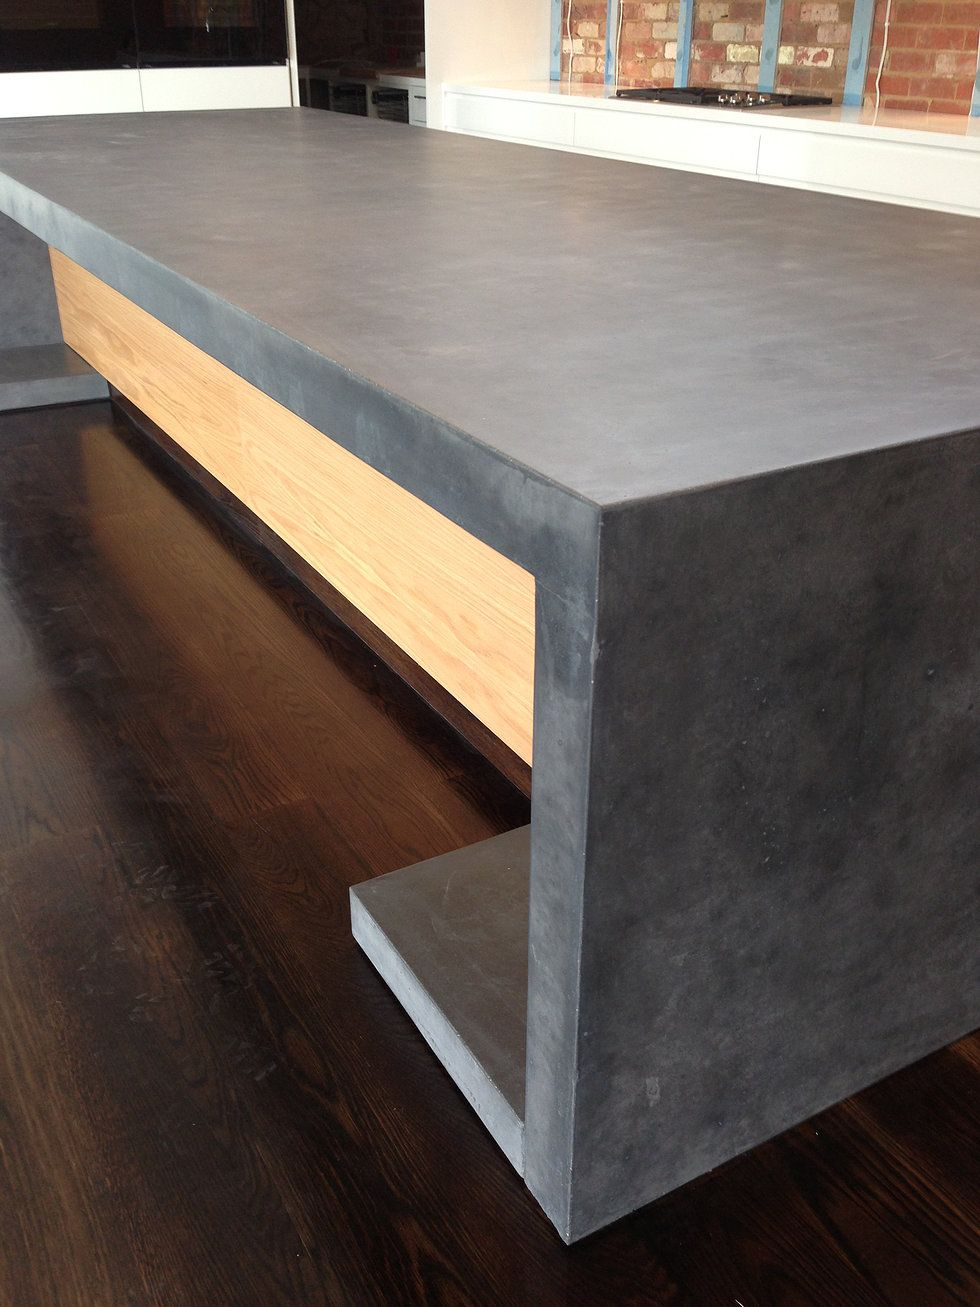 Benchtop Melbourne Rutso Concrete Benchtops Melbourne Fireplace In 2019 Polished